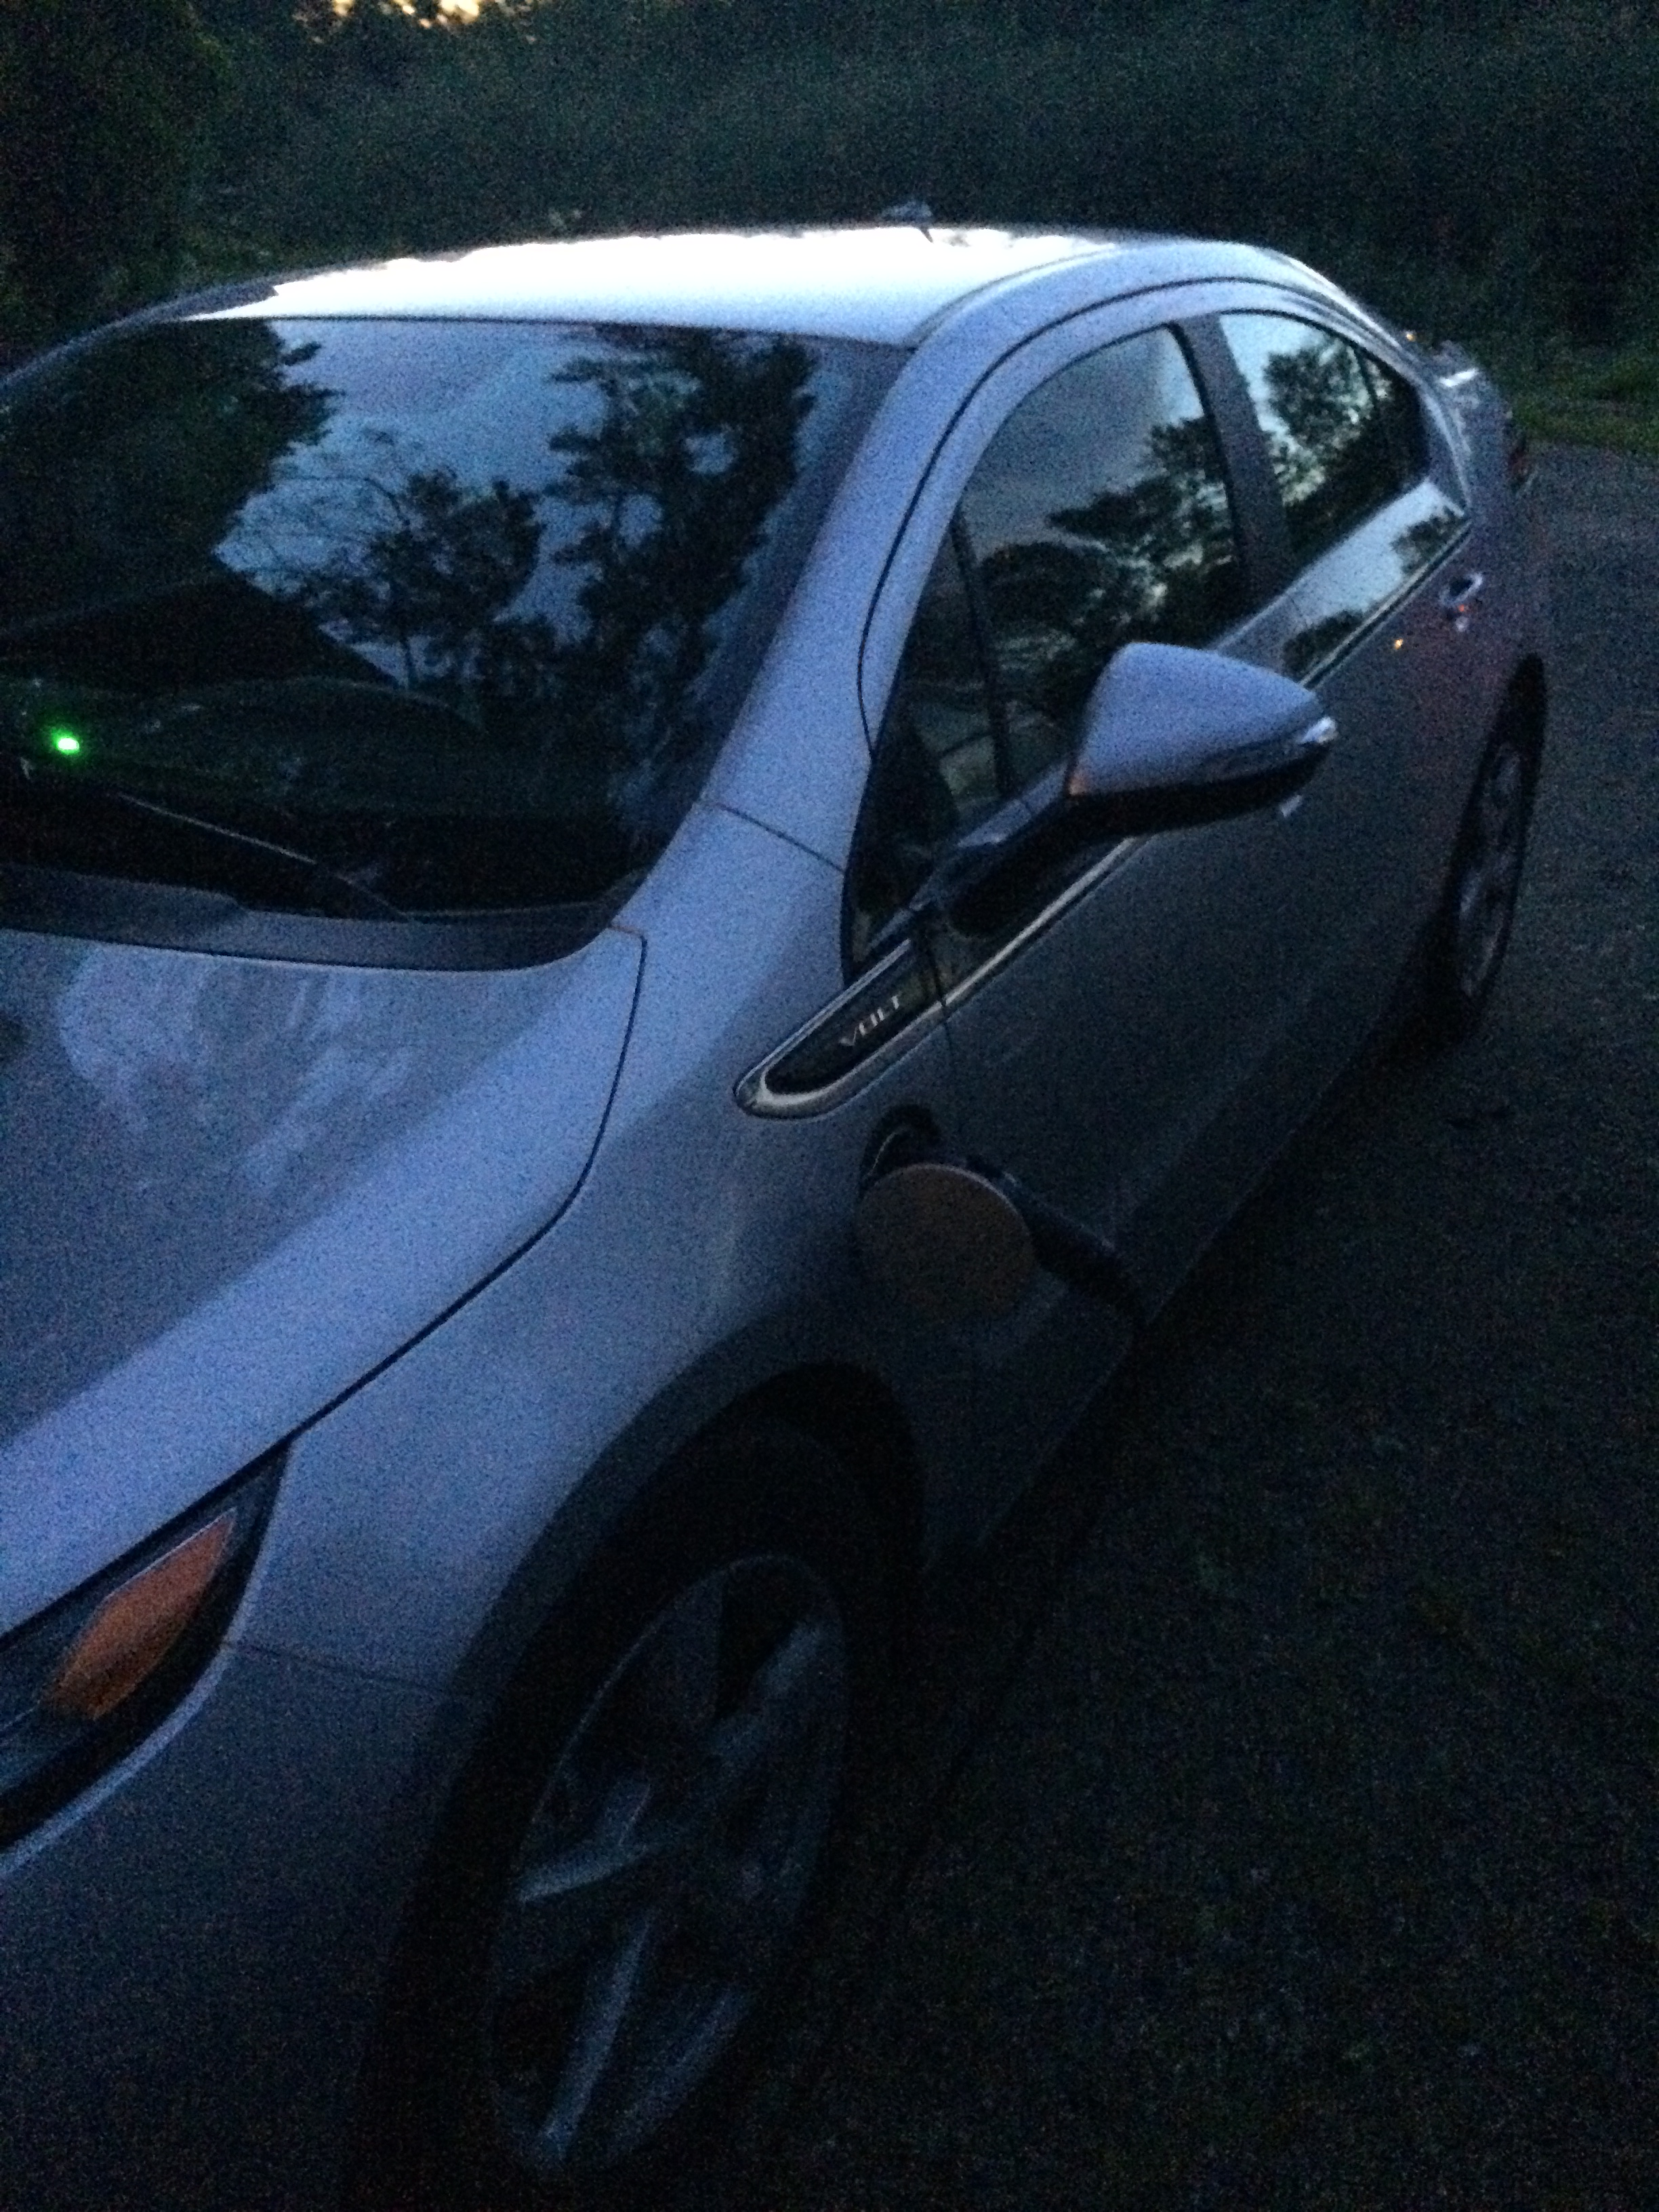 Car Pnw Runner Chevy Volt Gas My Dad Was Super Generous And Decided To Gift Me The Ill Be Saving So Much Money On With Did I Mention That Hate Getting